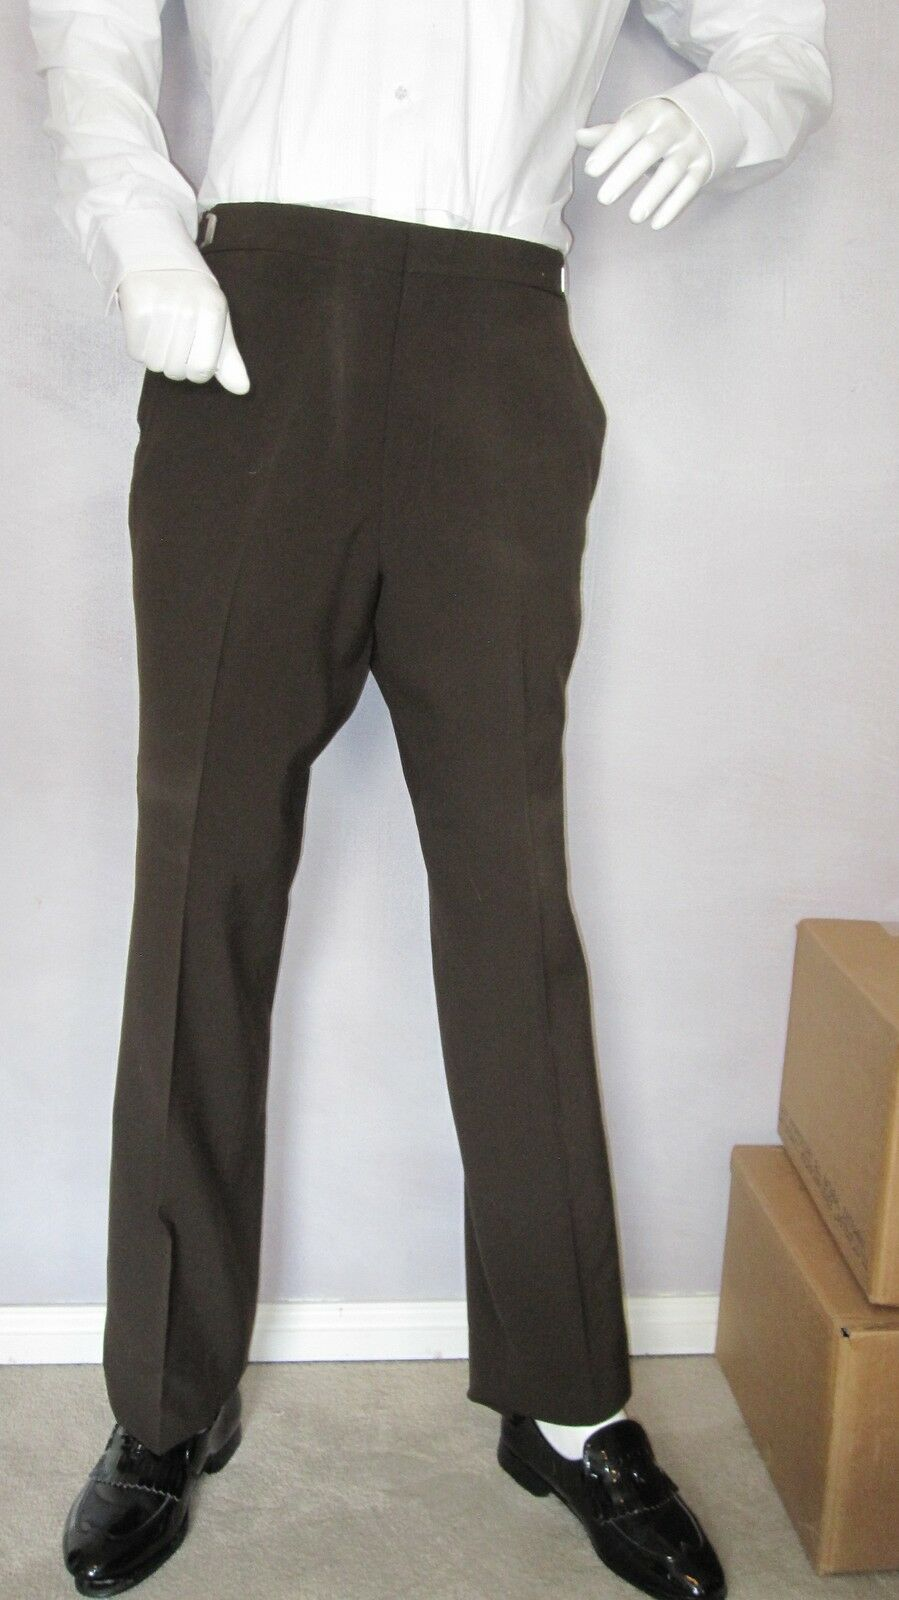 BOYS VINTAGE TUXEDO BROWN PANTS WITH BROWN STRIPE, AFTER SIX, MADE IN USA